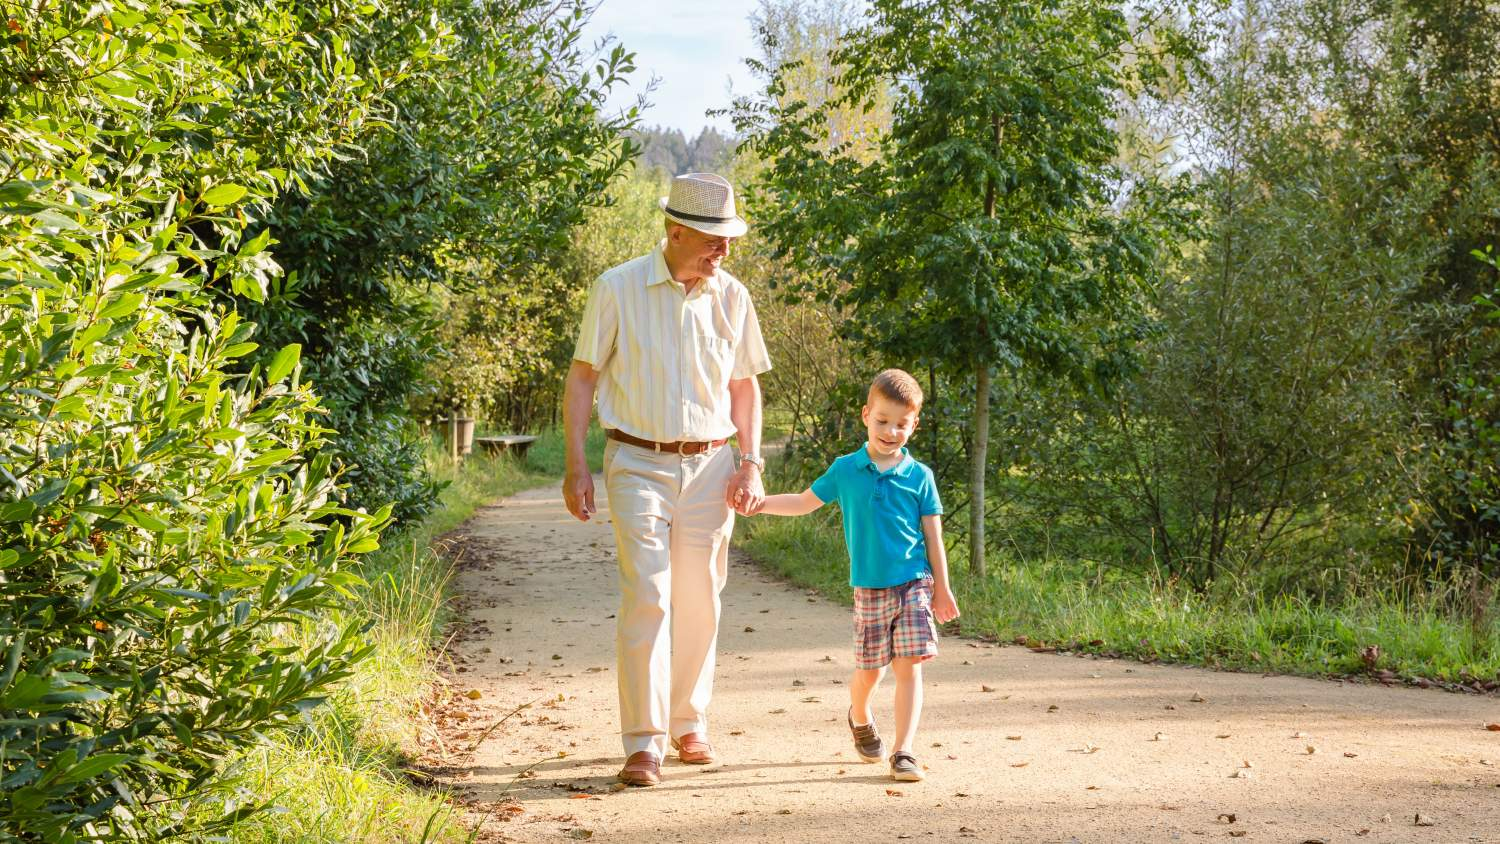 Grandfather and grandson walking in a park